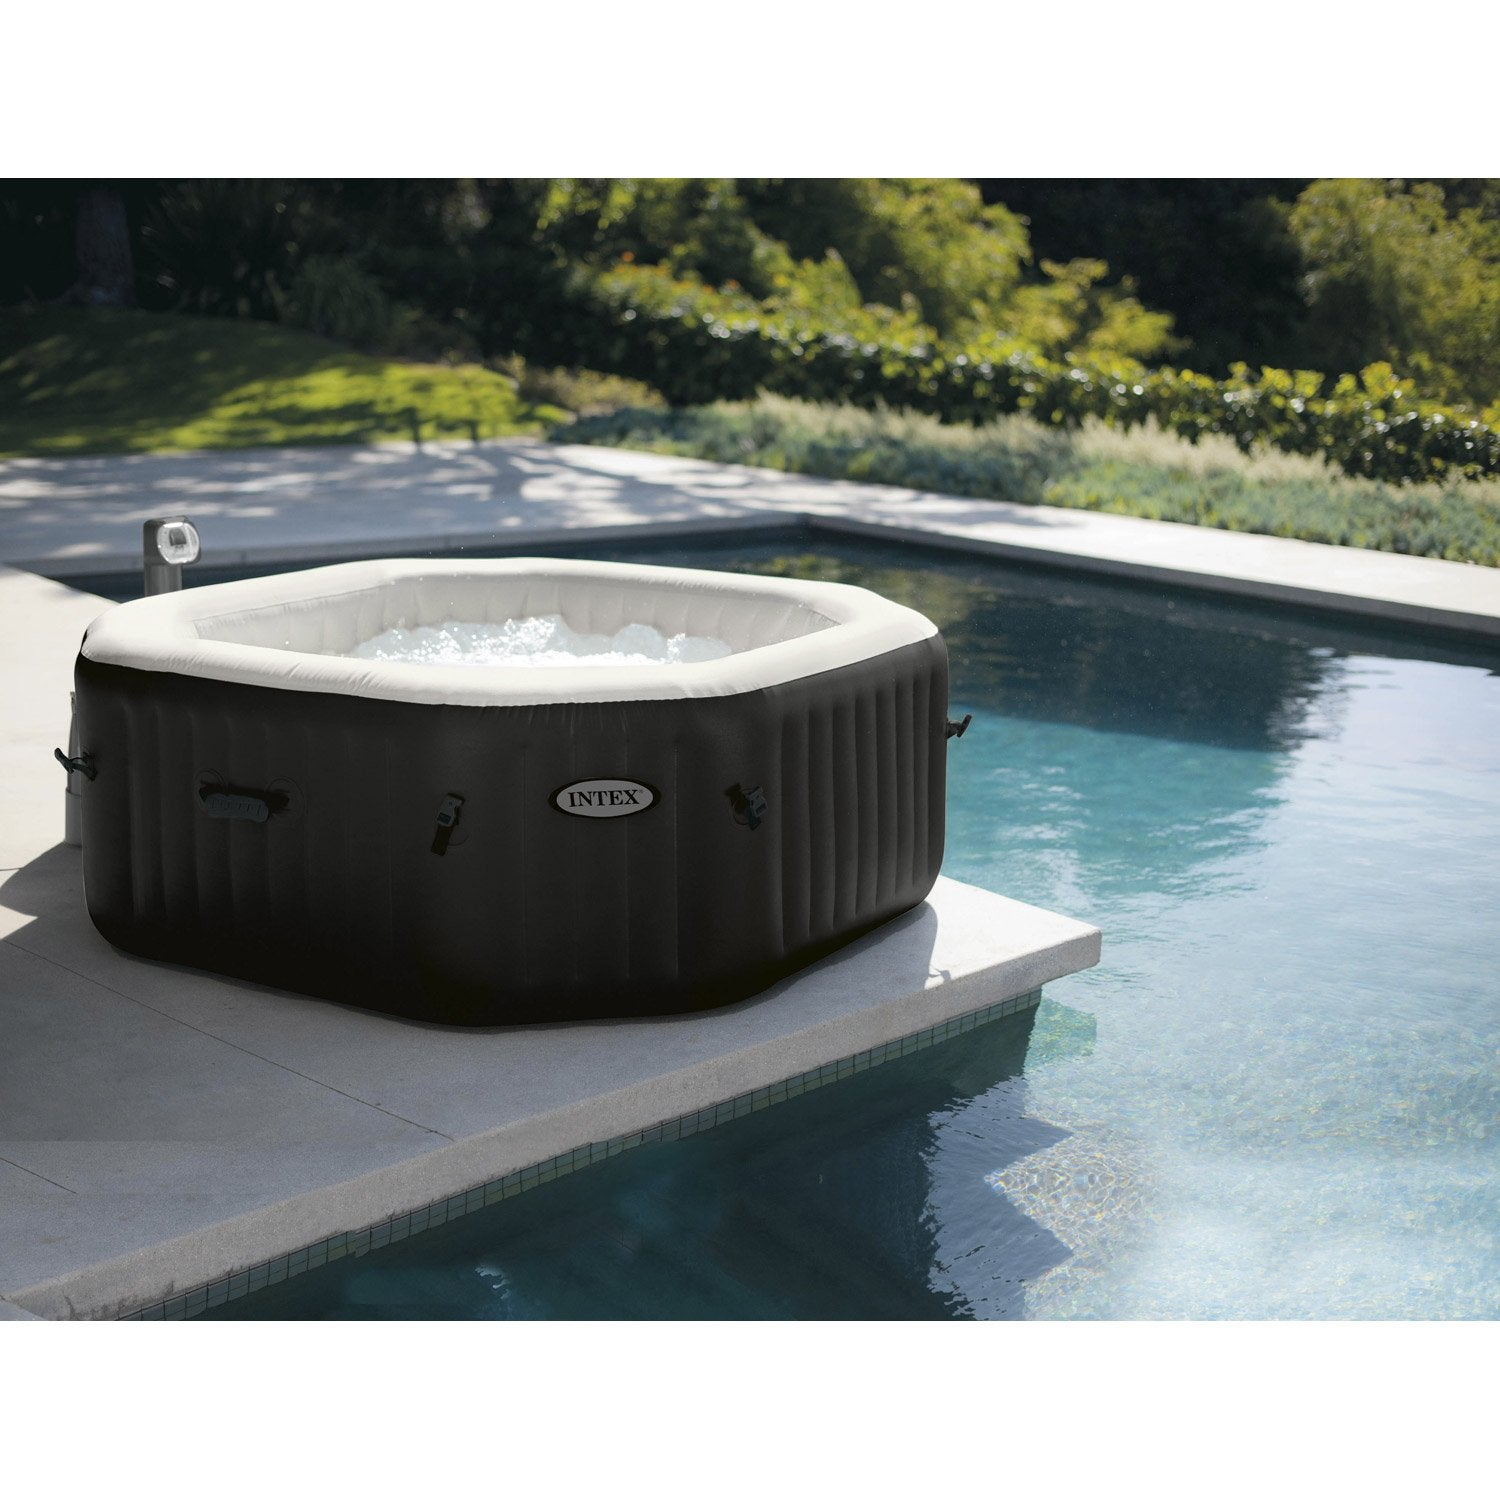 Spa gonflable intex purespa bulles octogonale 6 places assises leroy merlin - Piscine gonflable leroy merlin ...